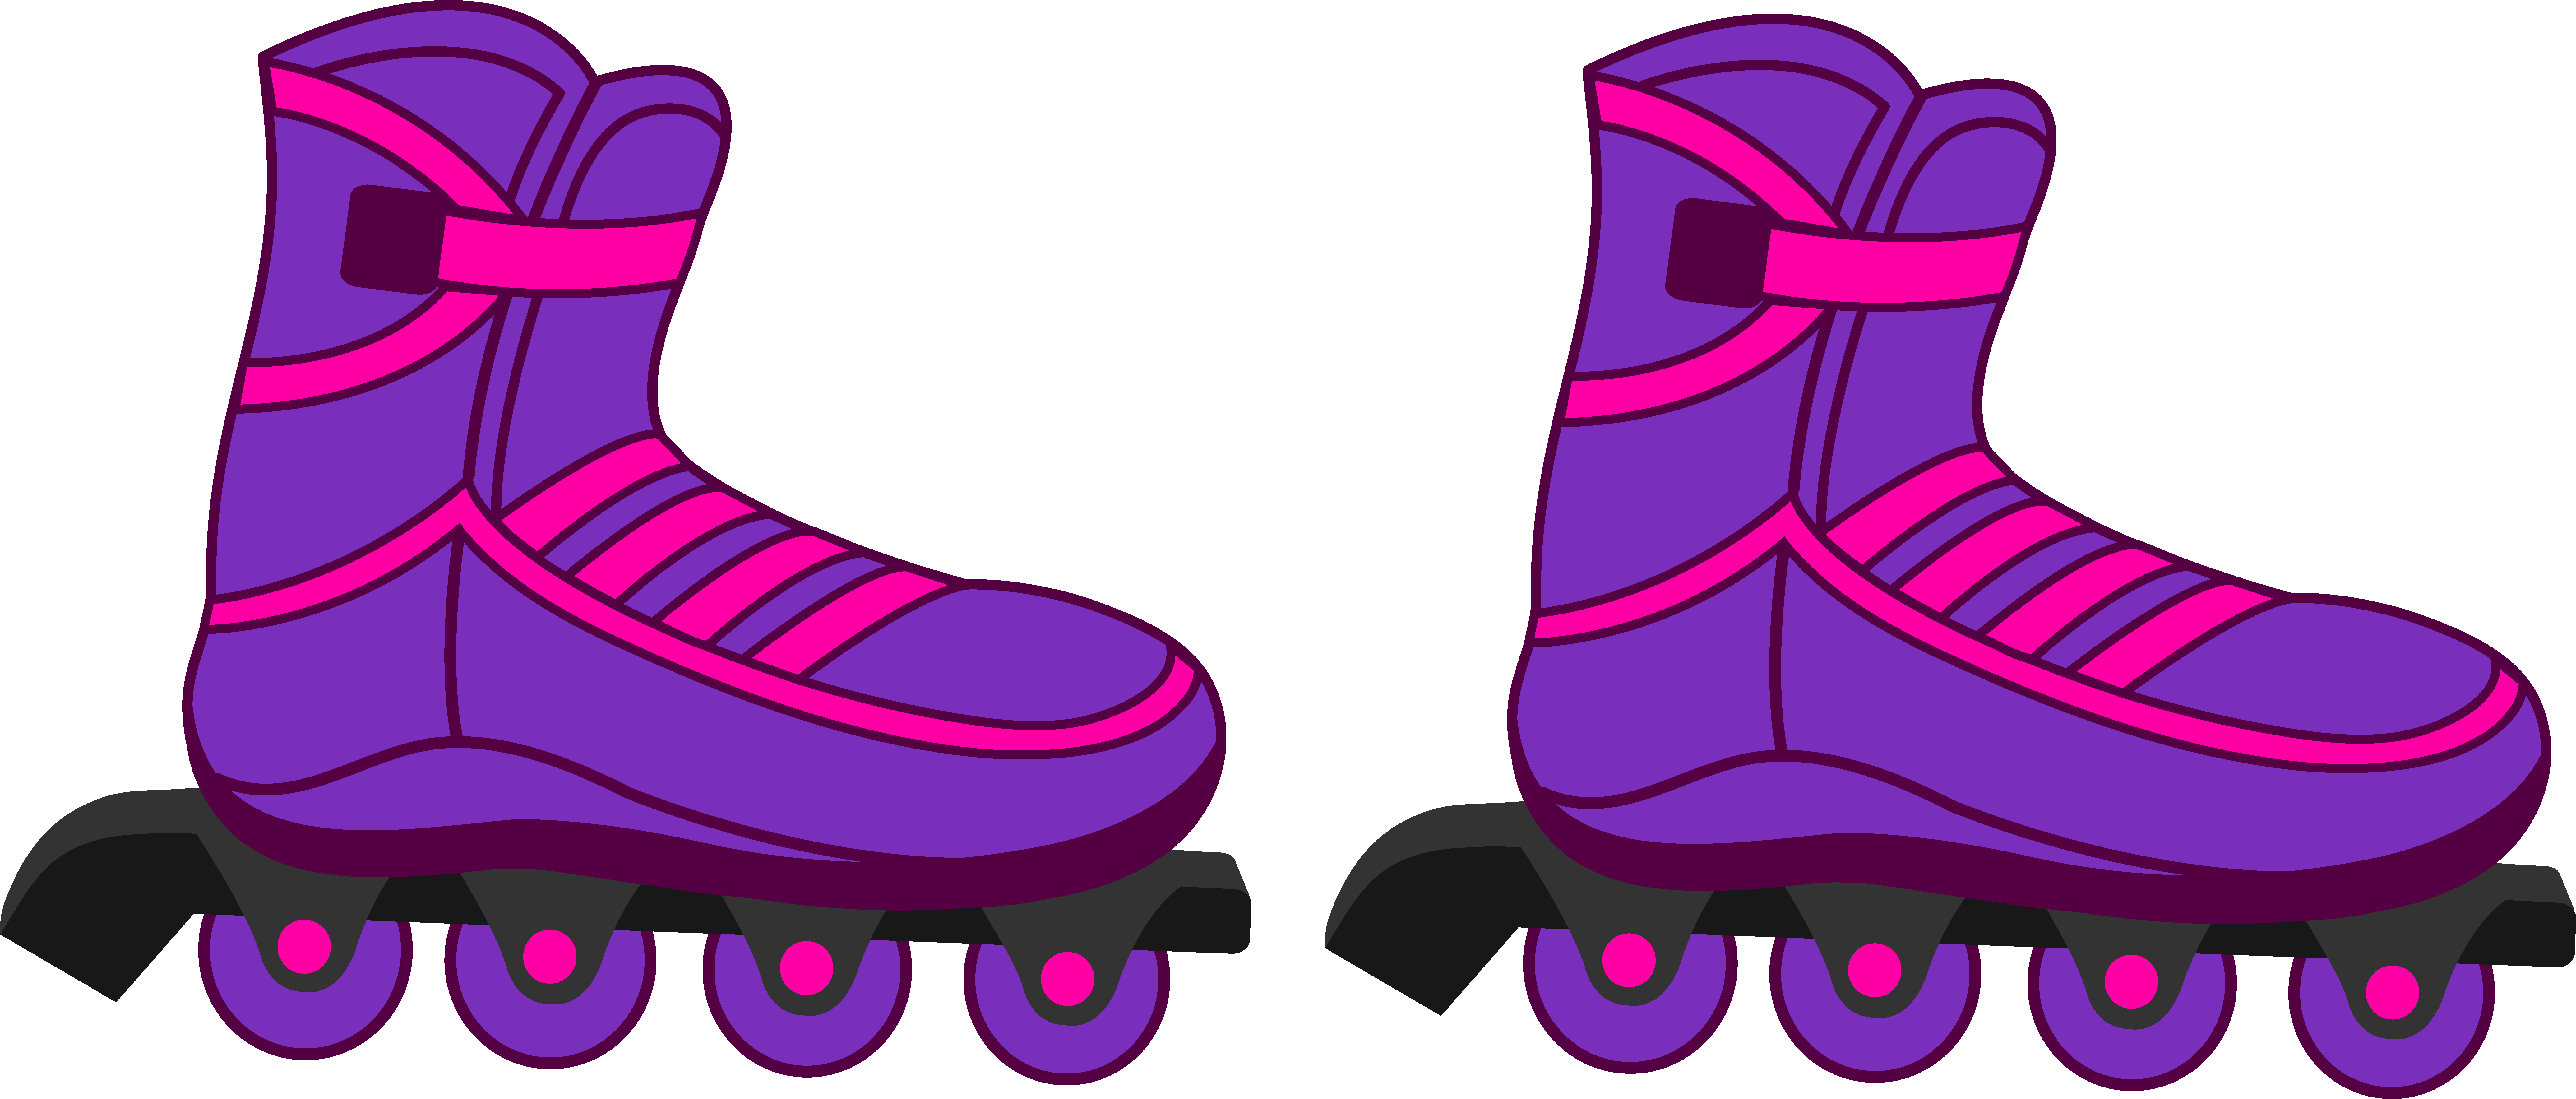 Blur clipart roller skate Roller and Rollerblades Pretty